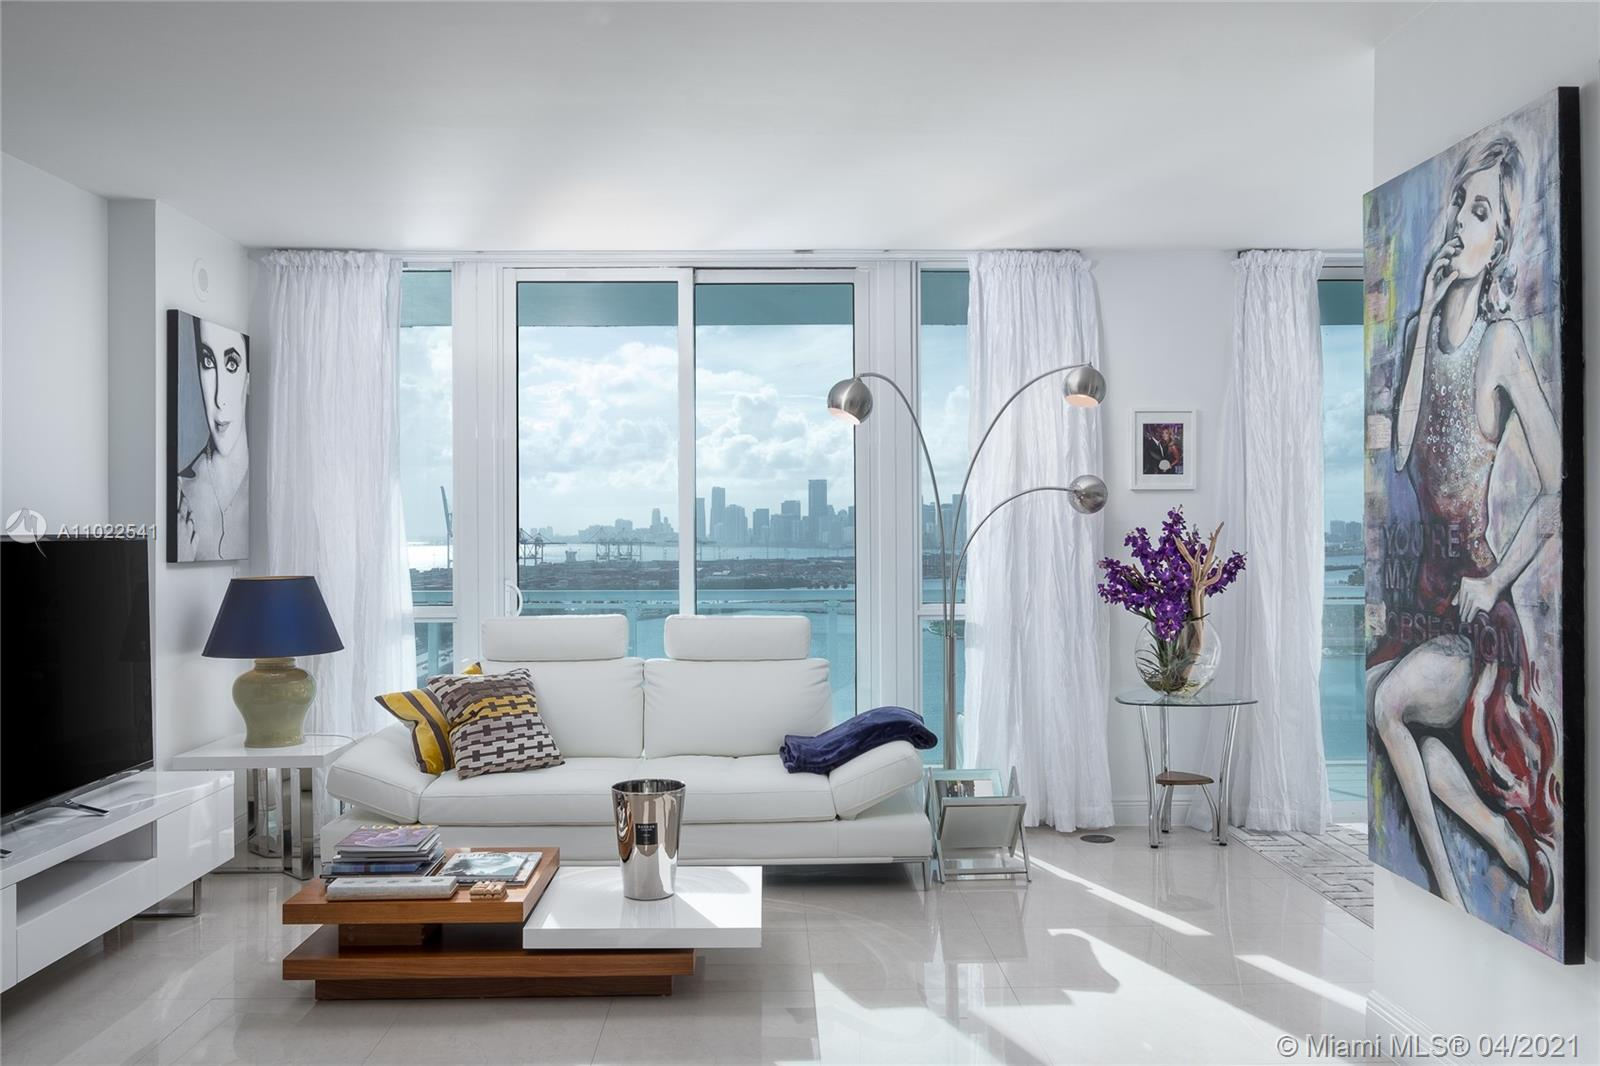 The BEST VIEW IN MIAMI-BEACH, overlooking Star,Hibiscus and Palm Islands, cruise terminal and Brickell Skyline. Full service luxury building offering 24hr security, valet,congierge,gym,heated pool, sauna&steam bath. The apartment has 1 bedroom and a den that is used as a second bedroom and 2 full bathrooms. 3 ways to enter large balcony. Top of the line Subzero and Gaggenau appliances and modern marble floors throughout. Easy to show.